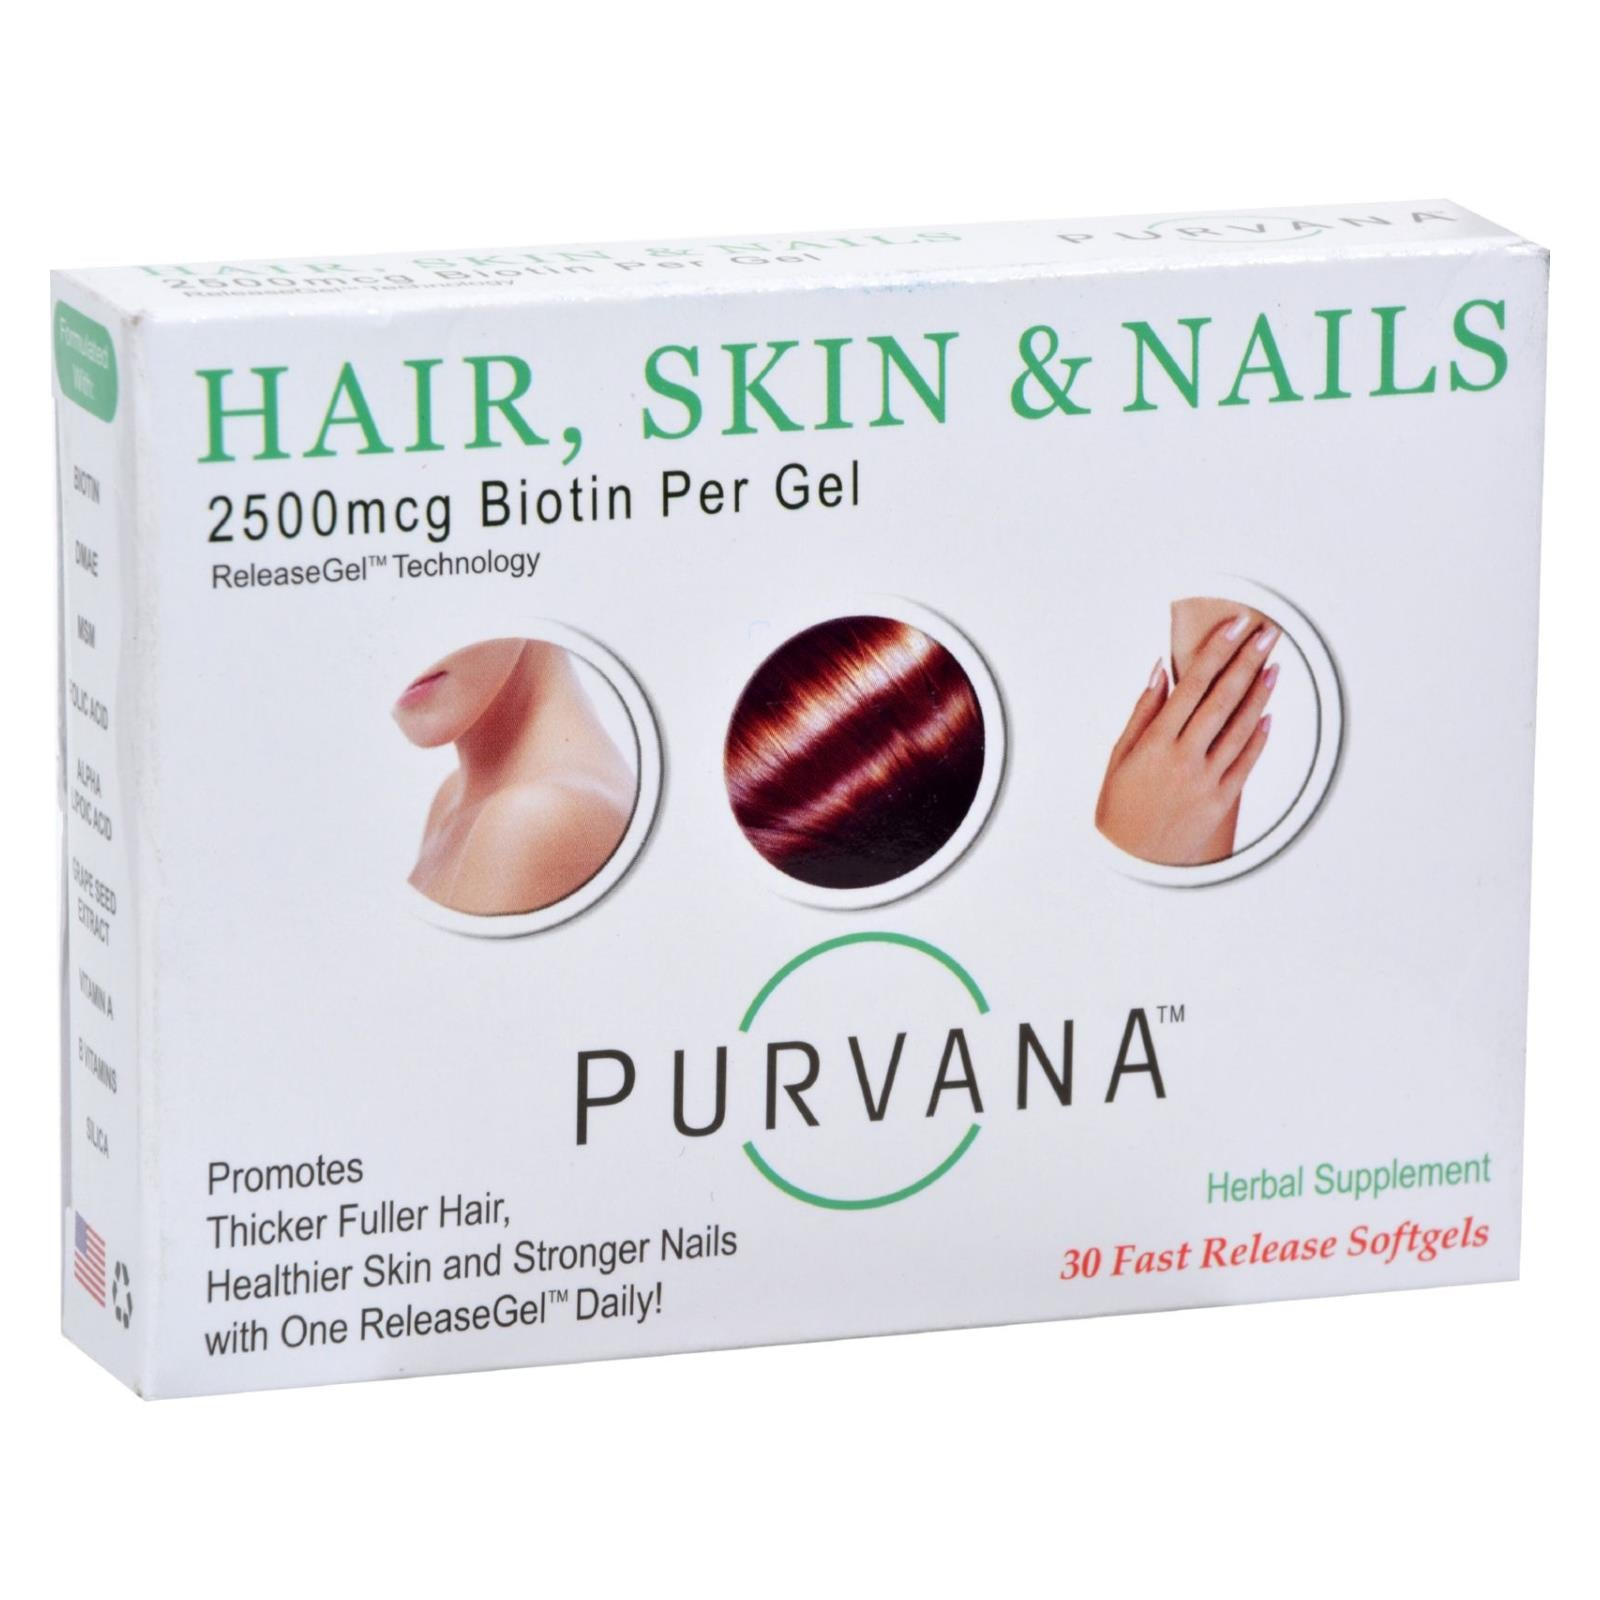 Heaven Sent Purvana Hair Skin Nails - 2500 Mcg - 30 Softgels freeshipping - GreatEagleInc